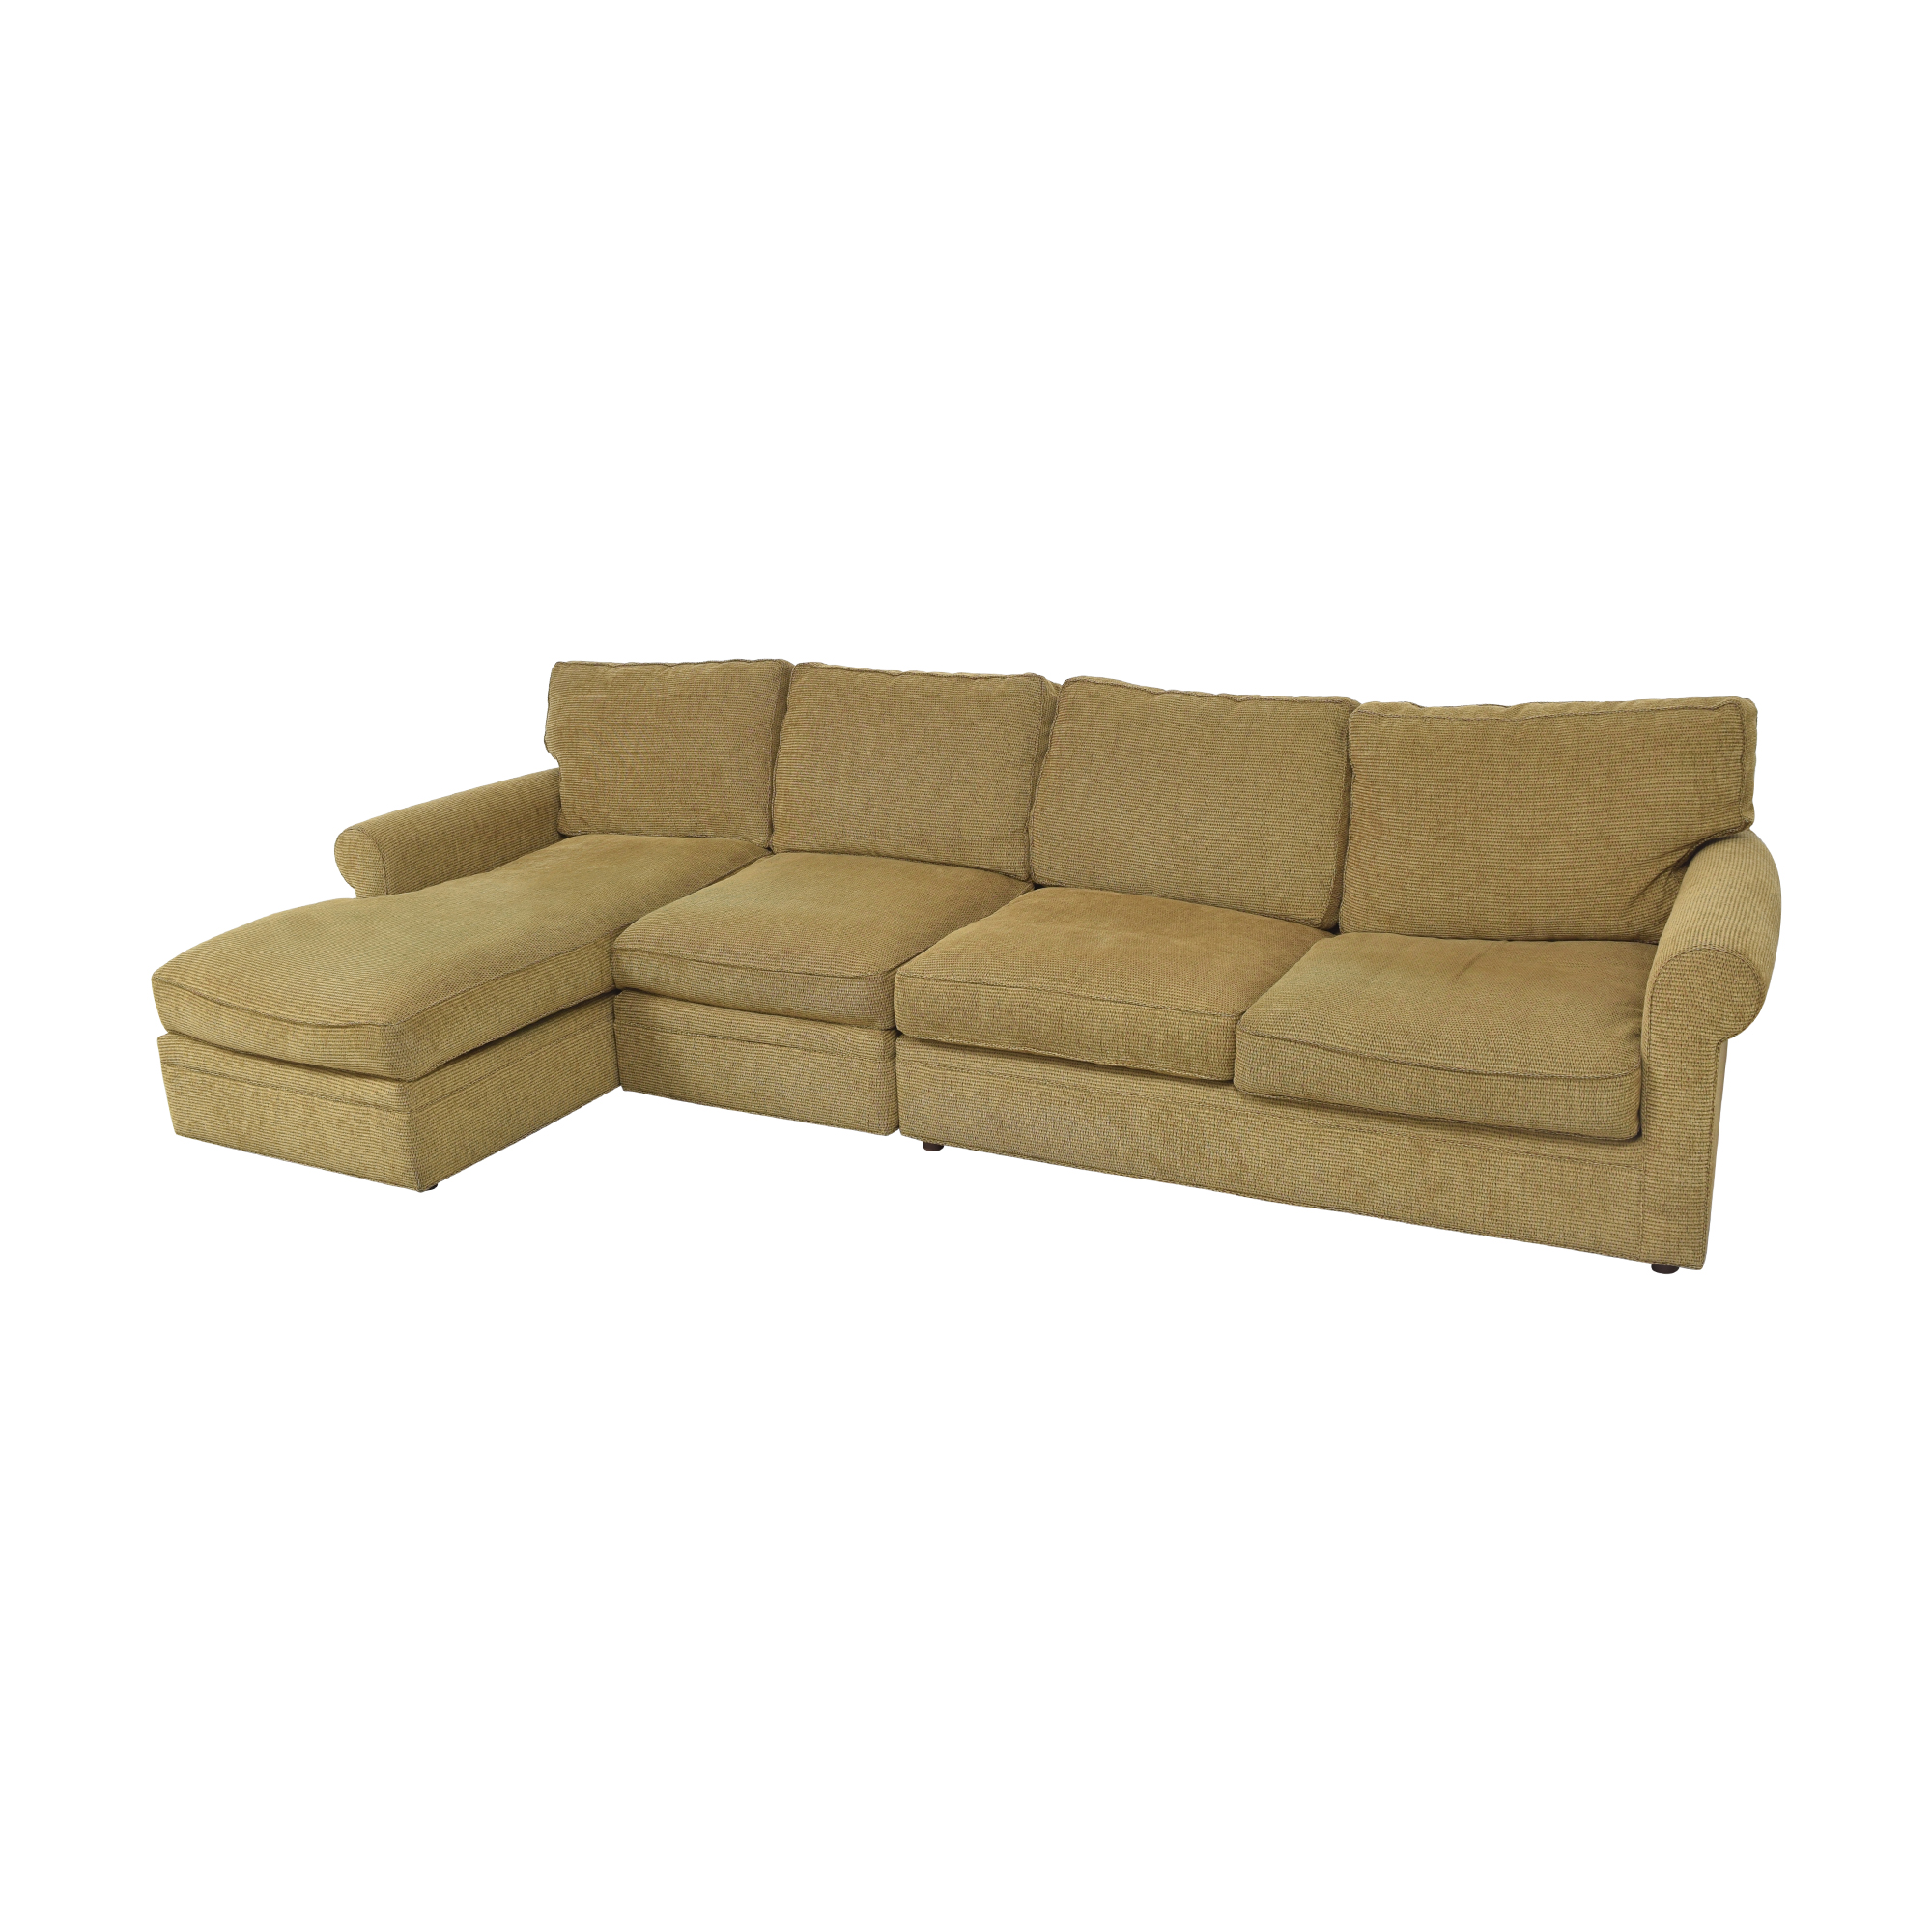 Crate & Barrel Crate & Barrel Chaise Sectional Sleeper Sofa ct